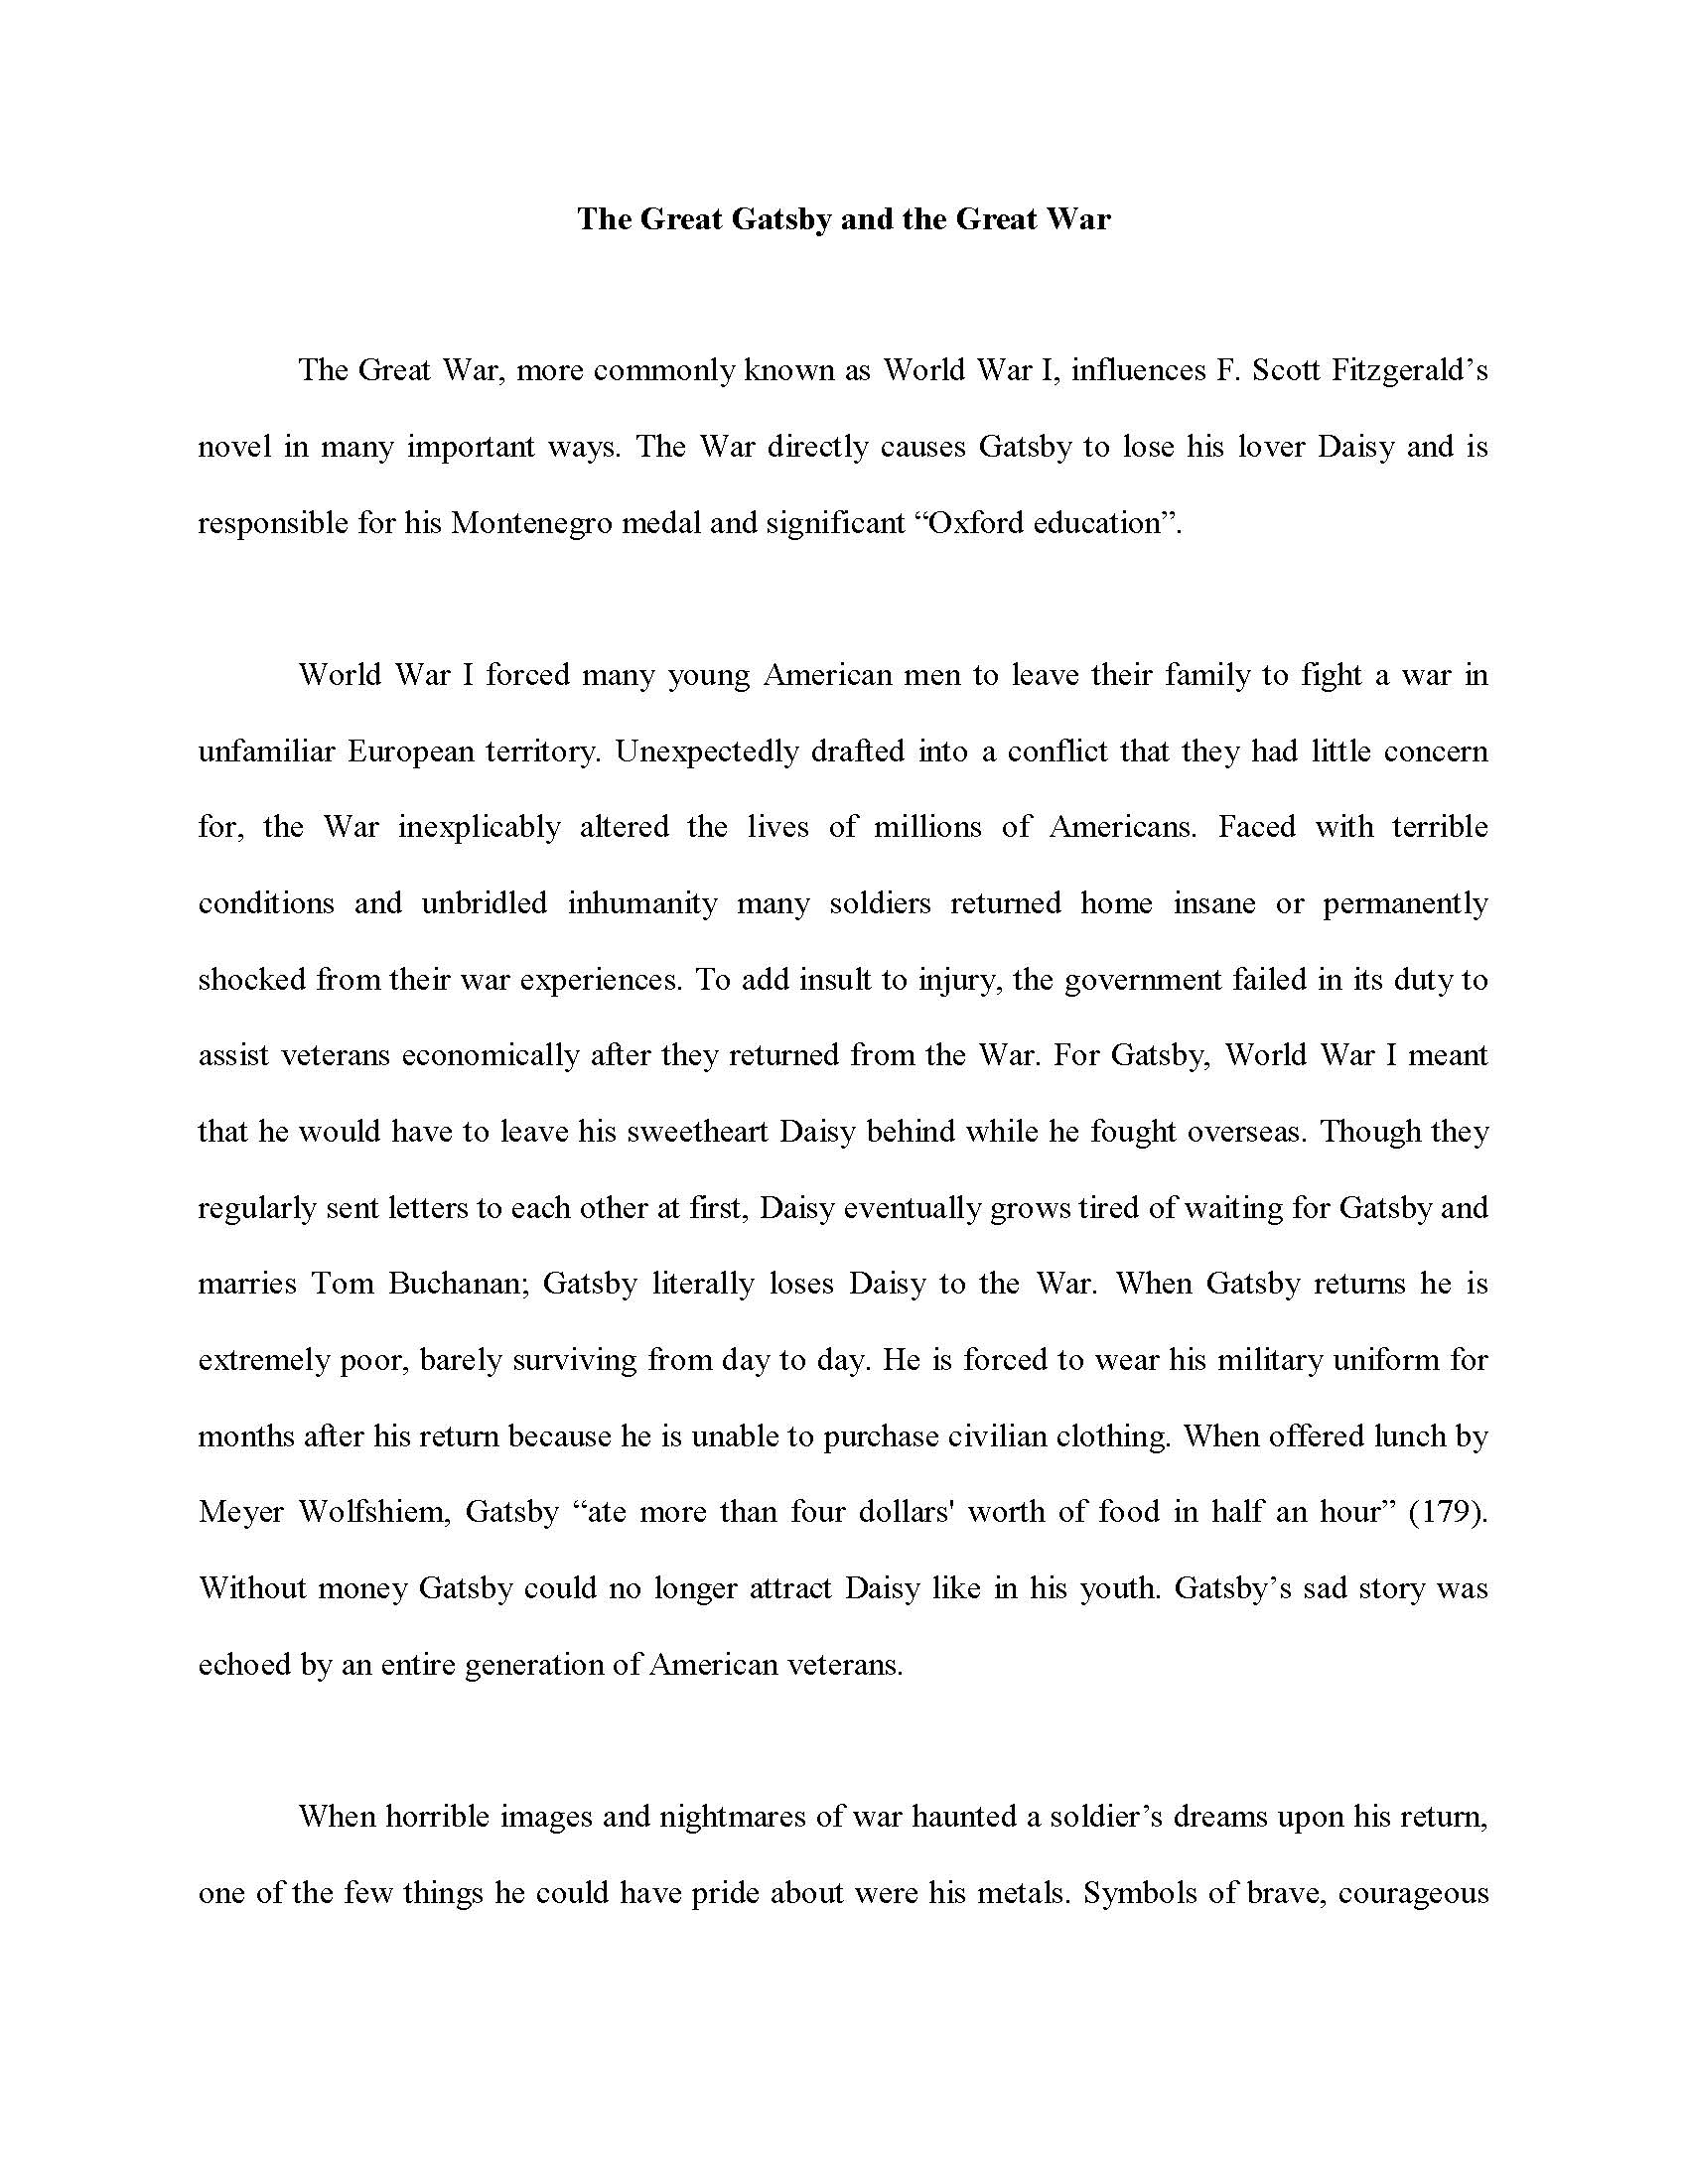 016 Informative Essay Sample Writing Satirical Top A Examples Of Satire Topics To Write On Essays Full